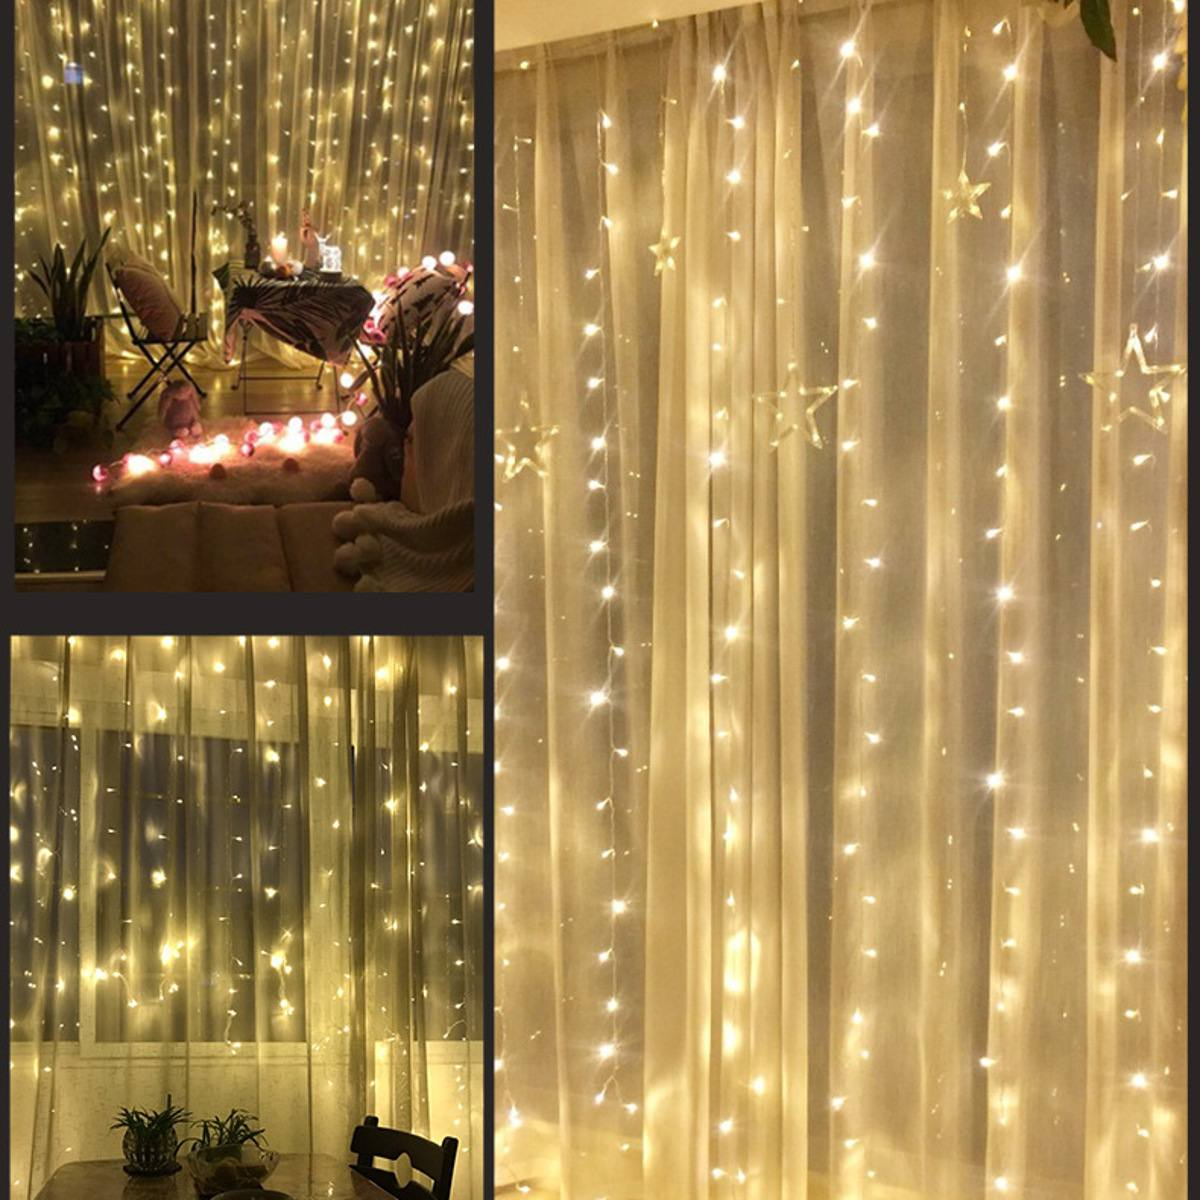 220V 3X6m 600Leds Organza Backdrop LED Curtain Icicle String Light Party Wedding Garden Stage Outdoor Decorative Icicle Lights